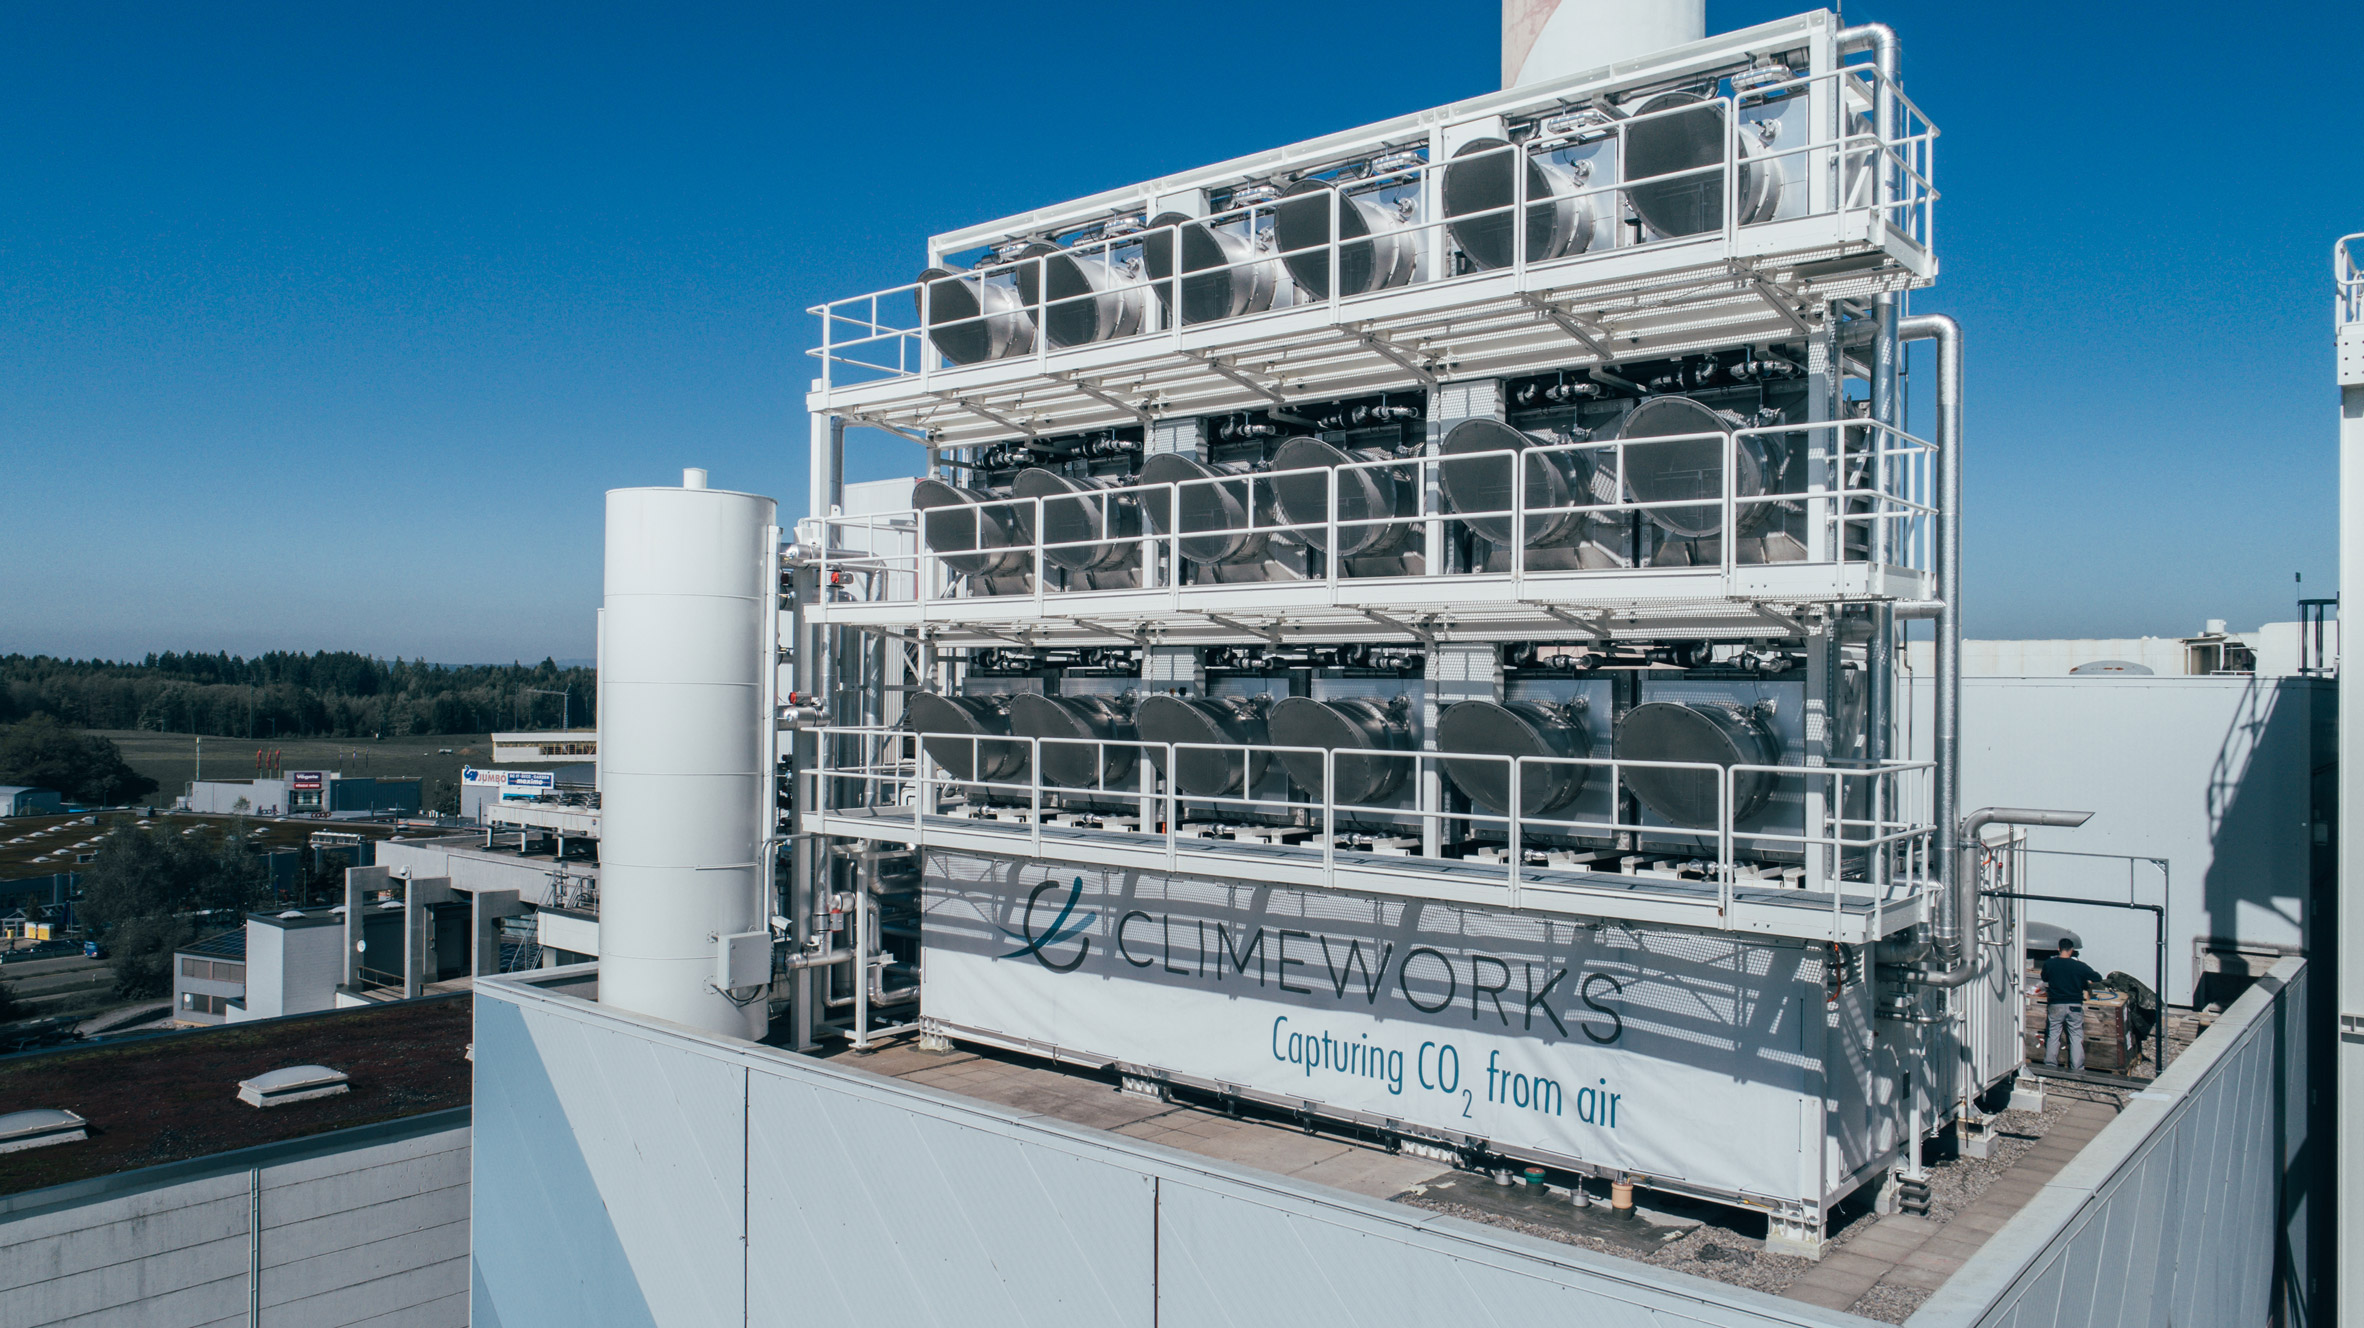 The world's first commercial carbon-capture plant opens in Switzerland